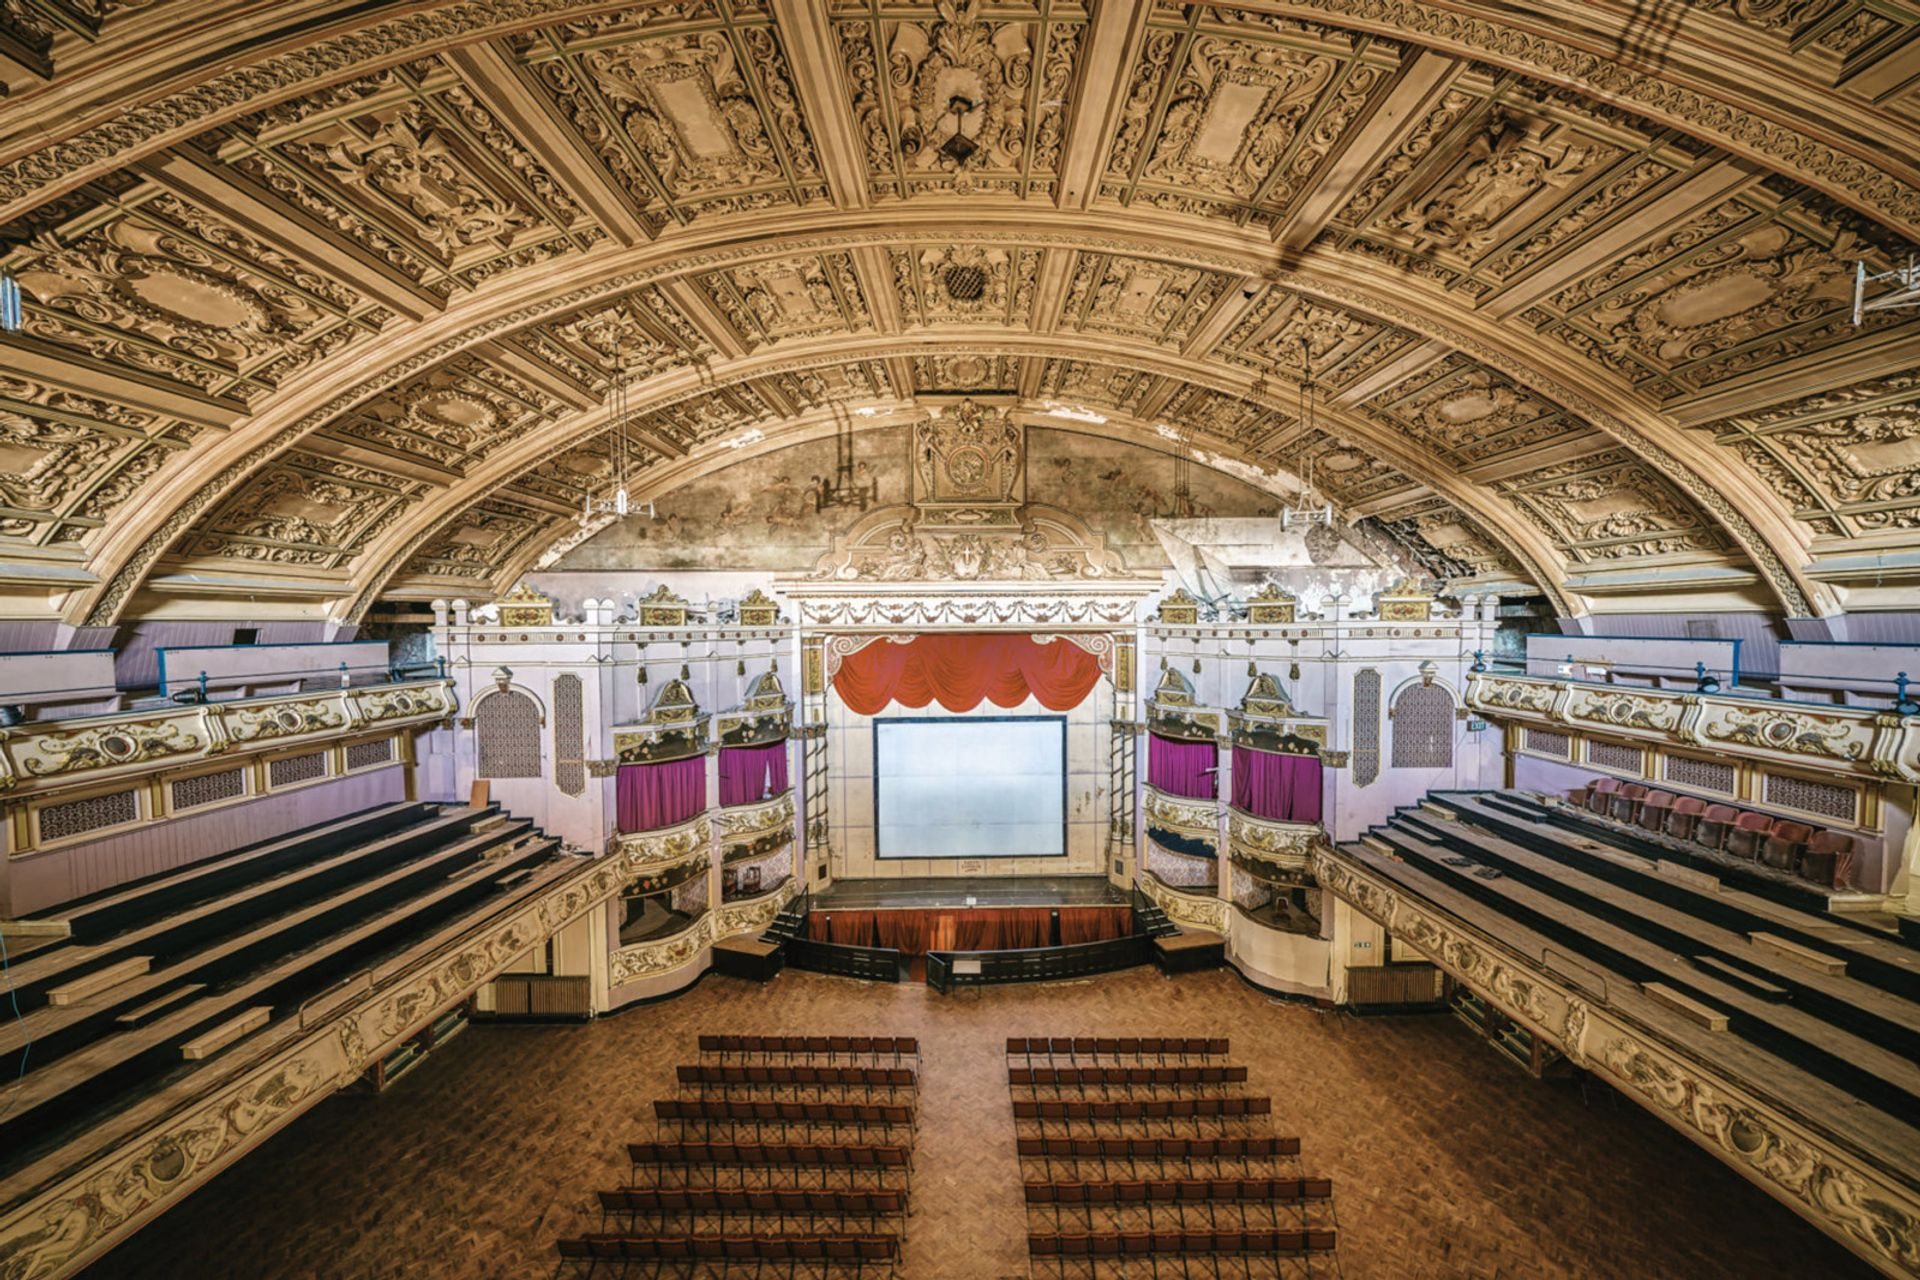 Patching up a gaping hole in the vaulted ceiling of the Morecambe Winter Gardens was one of the first restoration tasks Damian Rose/Morecambe Winter Gardens Preservation Trust